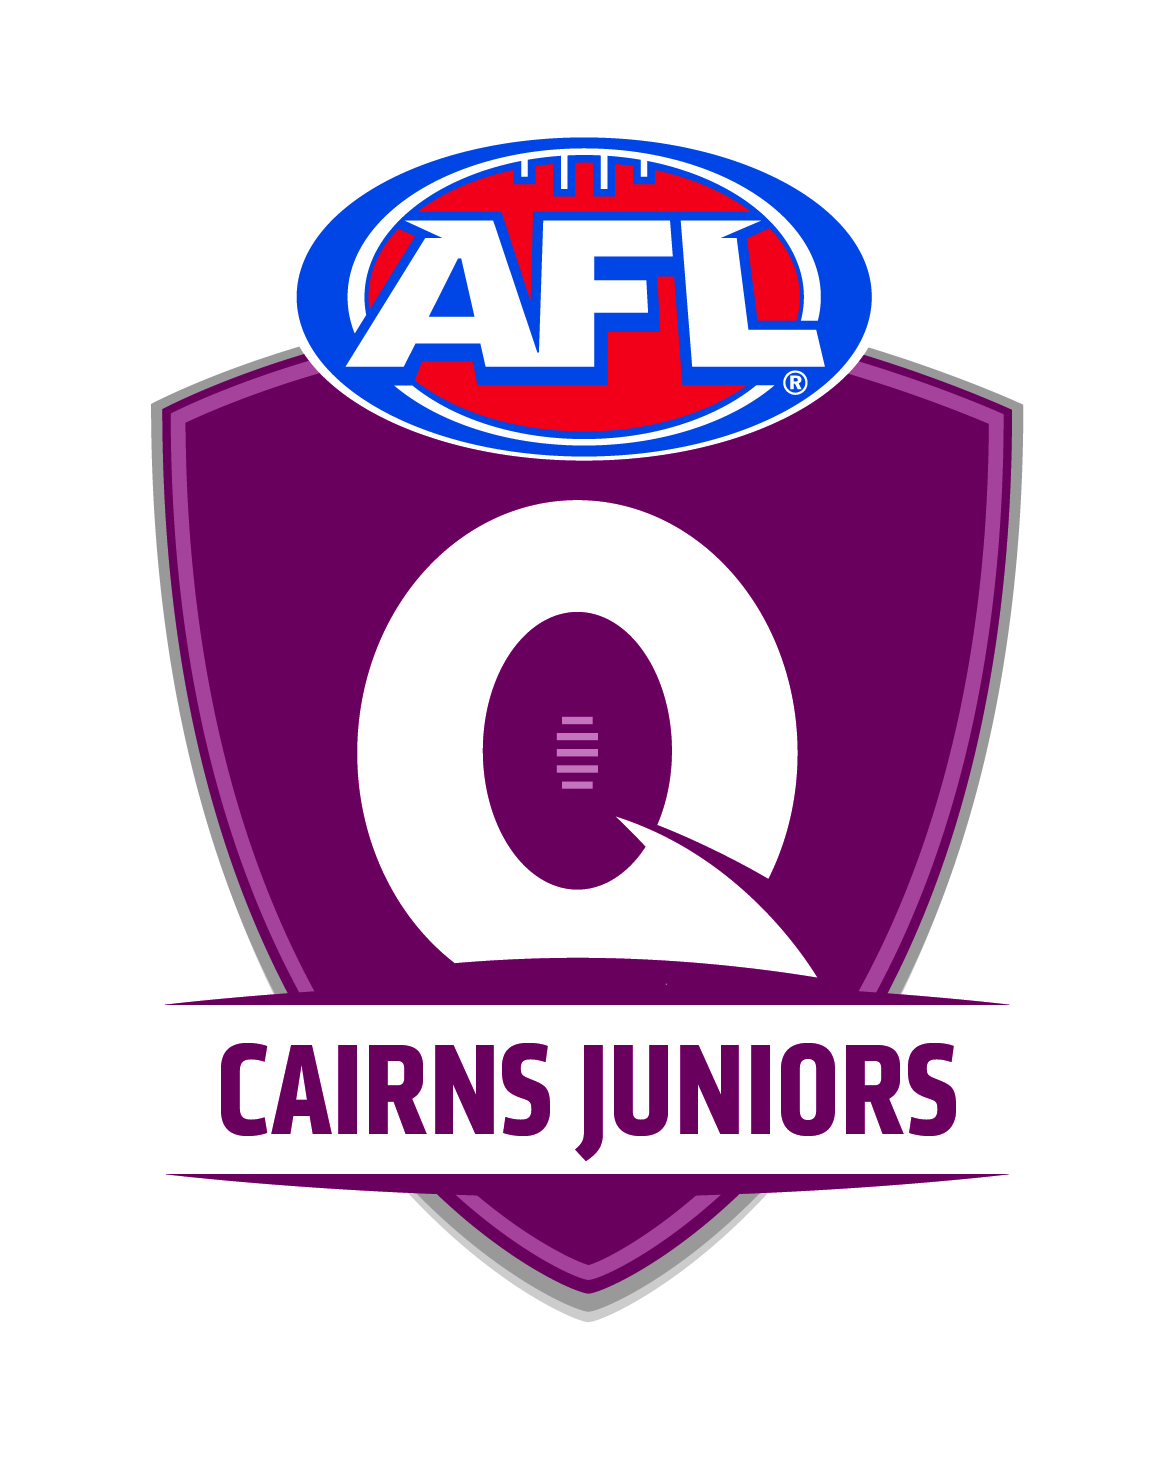 CAIRNS JUNIORS Logo